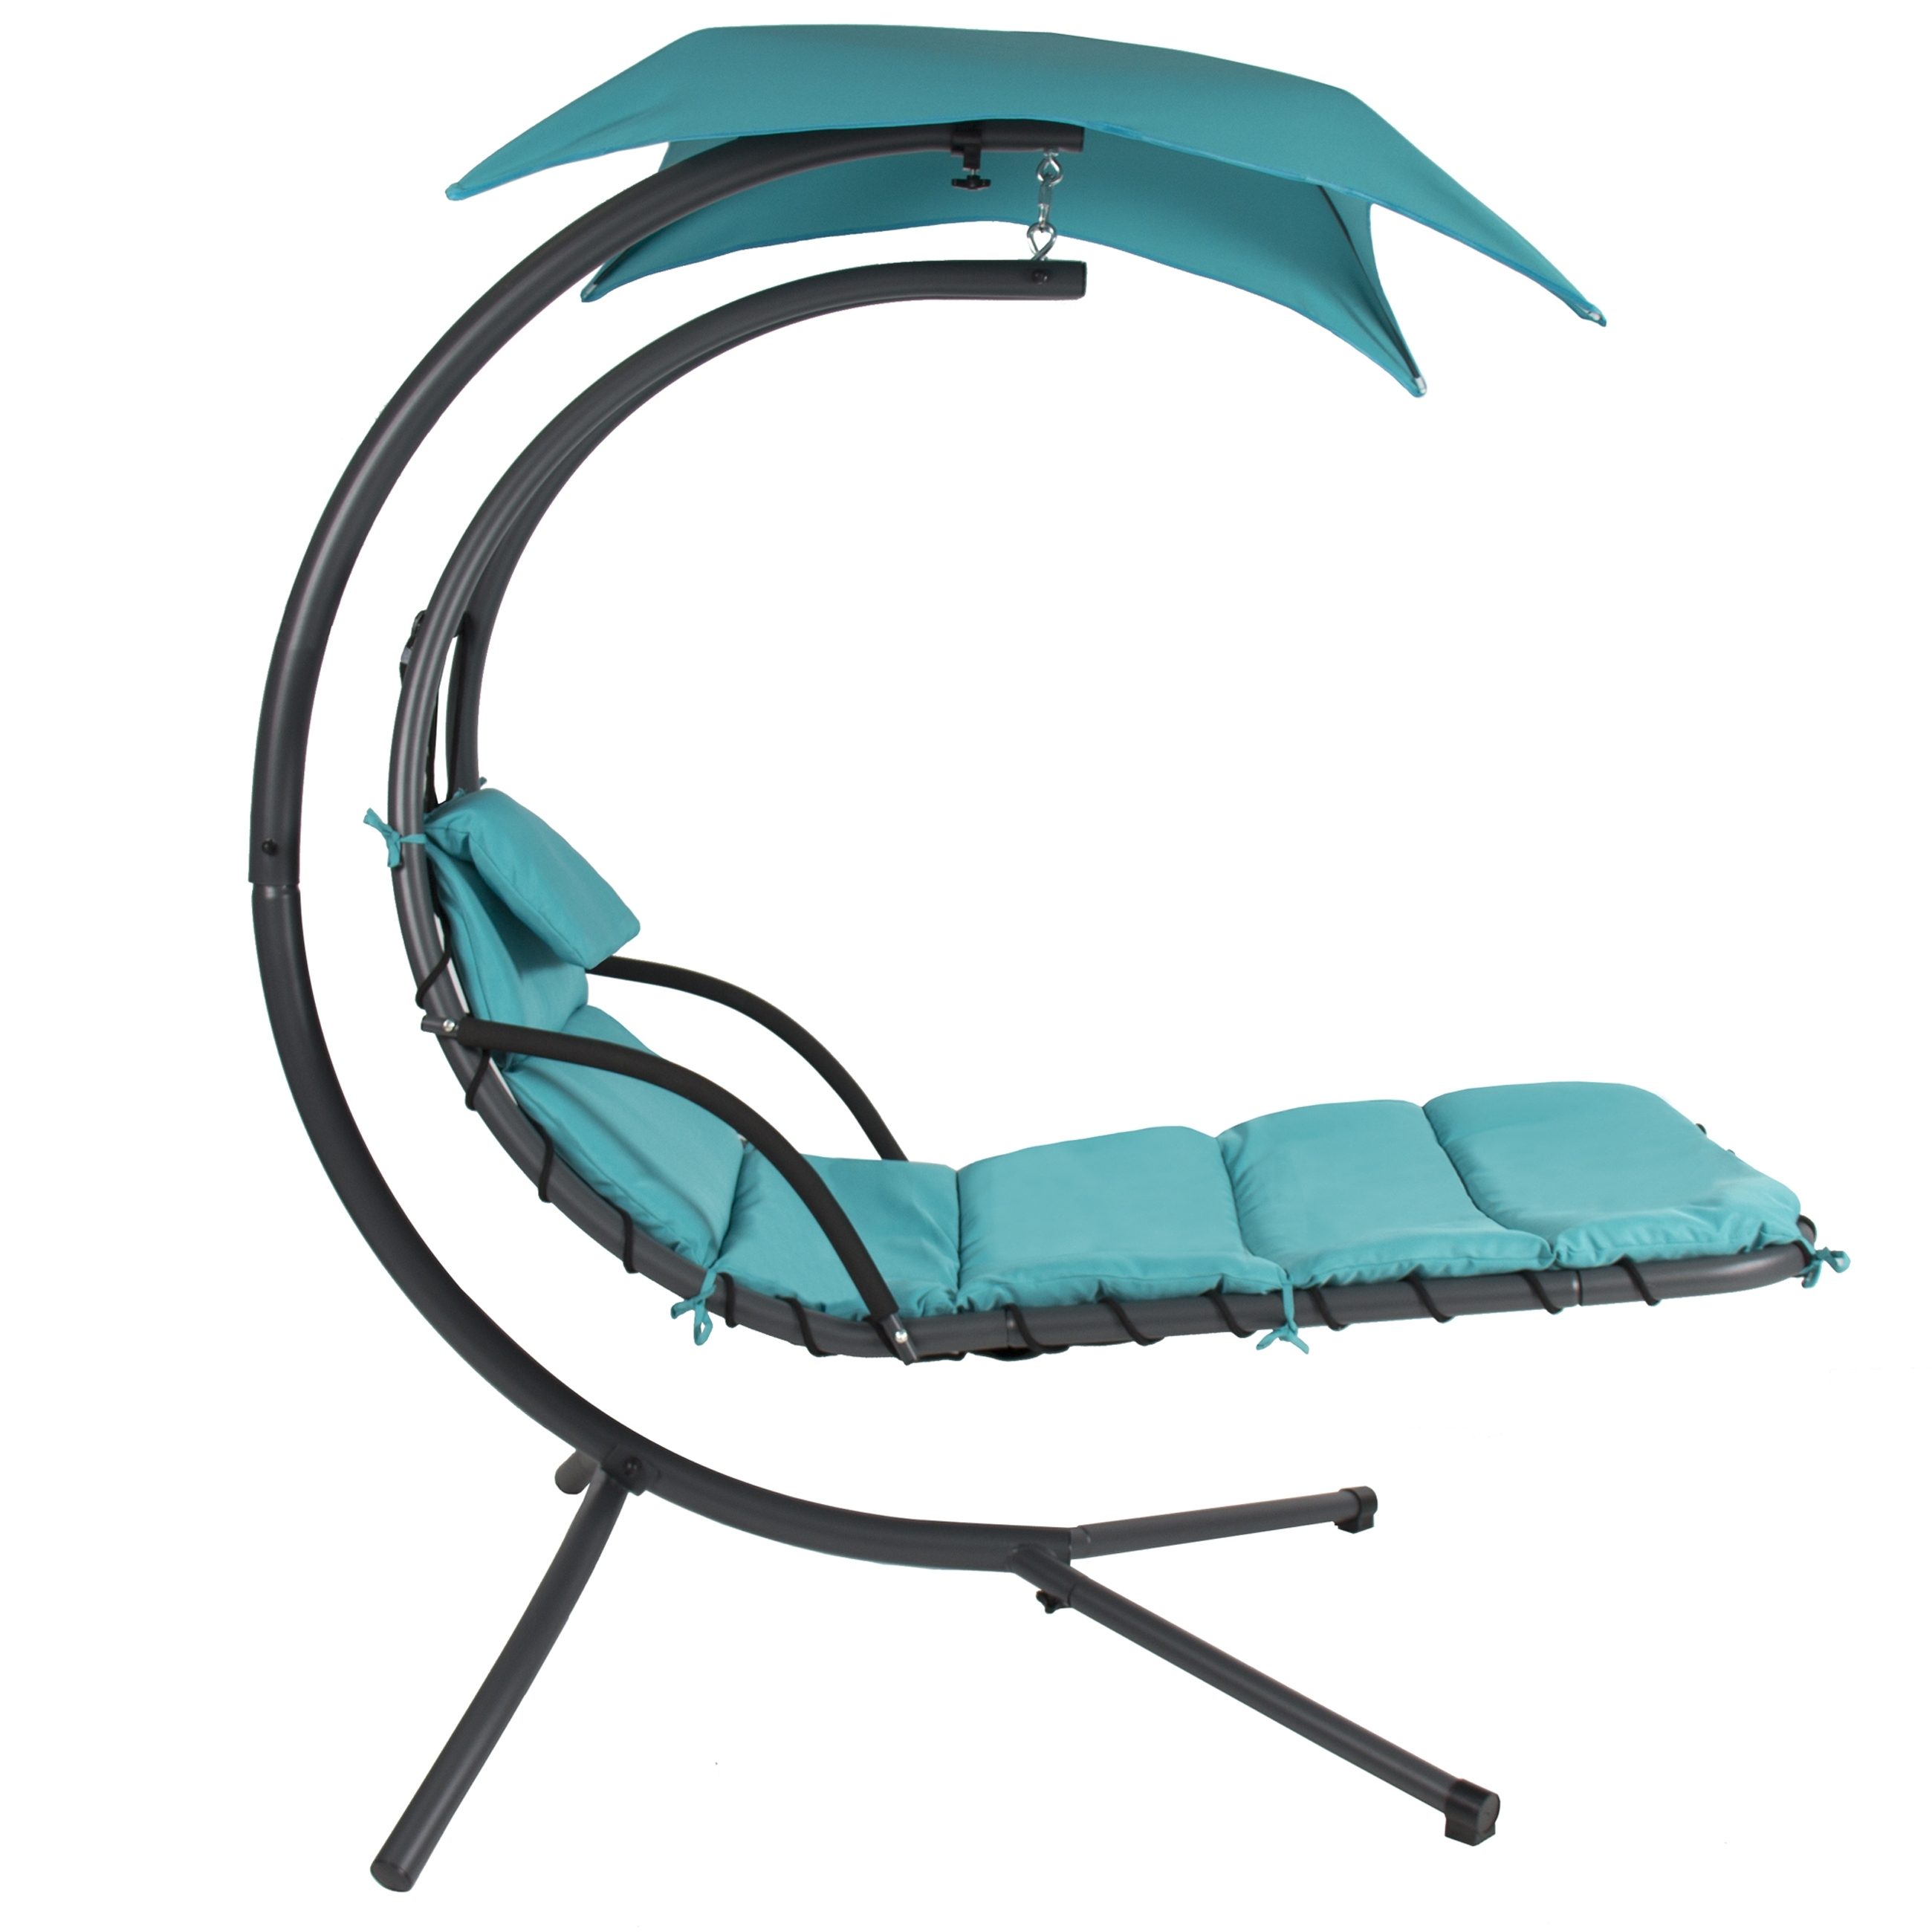 Fashionable Hanging Chaise Lounge Chairs With Regard To Hanging Chaise Lounger Chair Arc Stand Air Porch Swing Hammock (View 5 of 15)